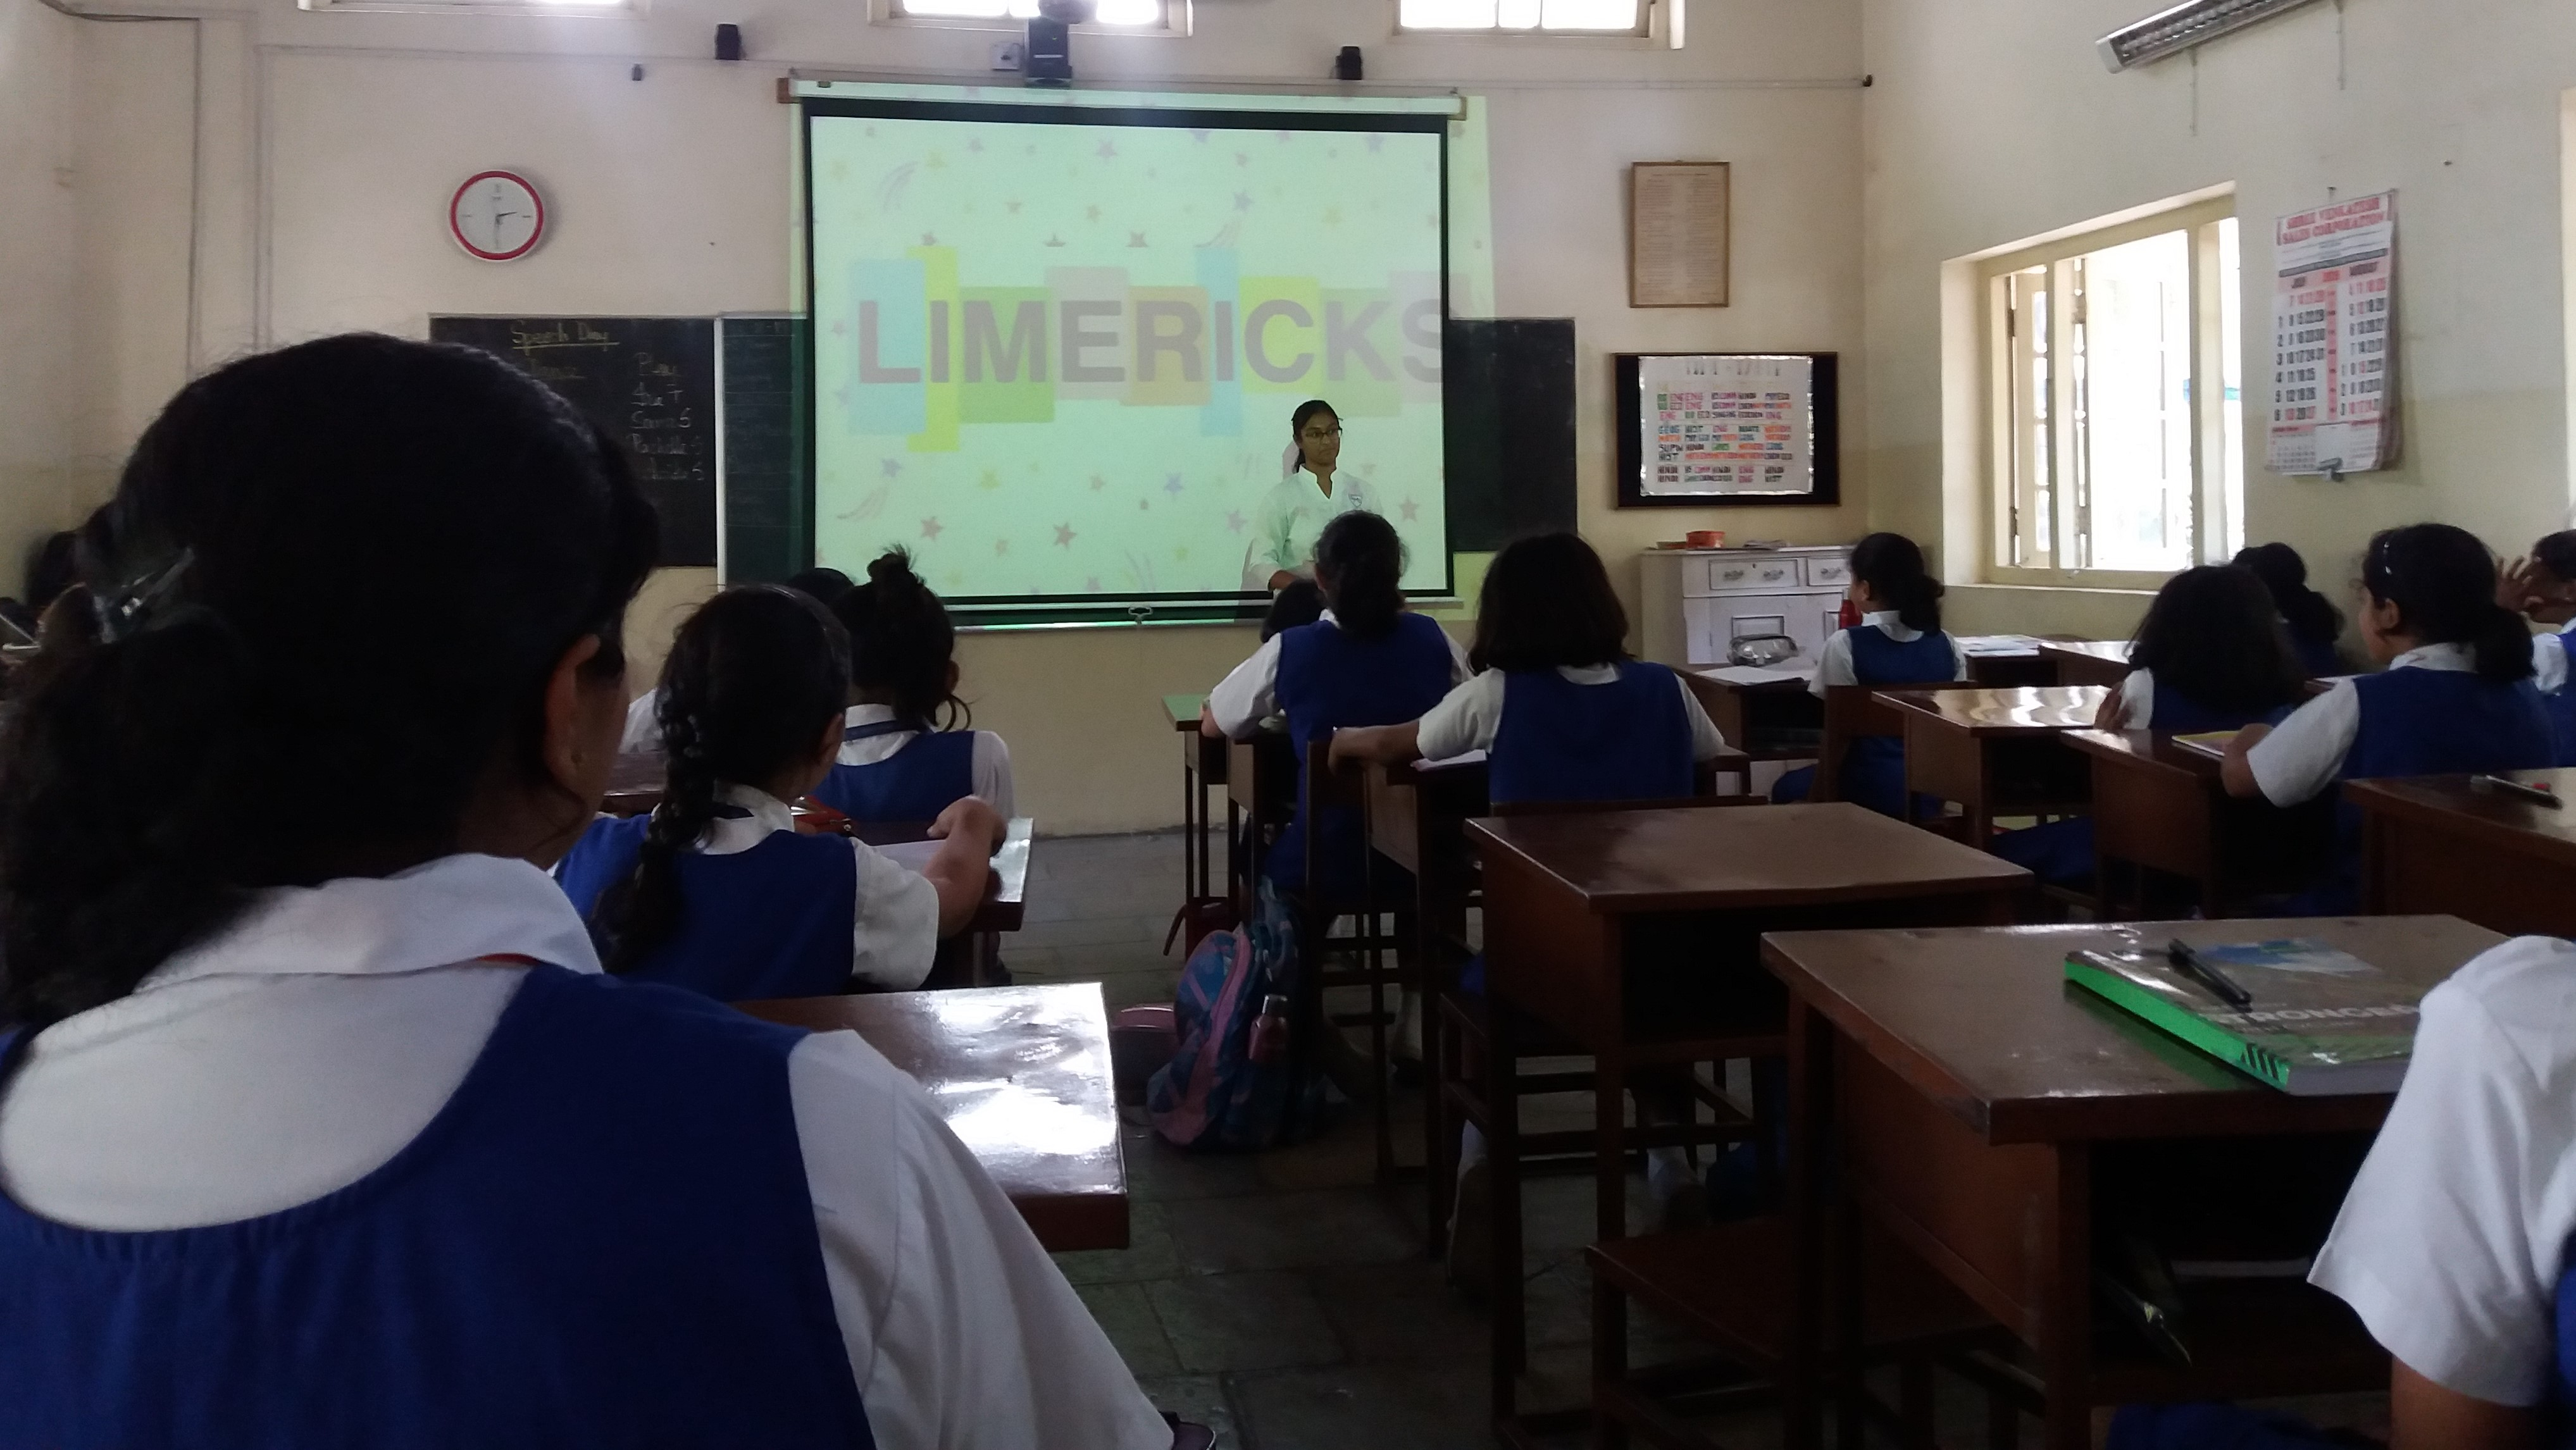 Audio-visual display that says 'Limericks' A student standing before it, talking to a class of girls (no faces visible)